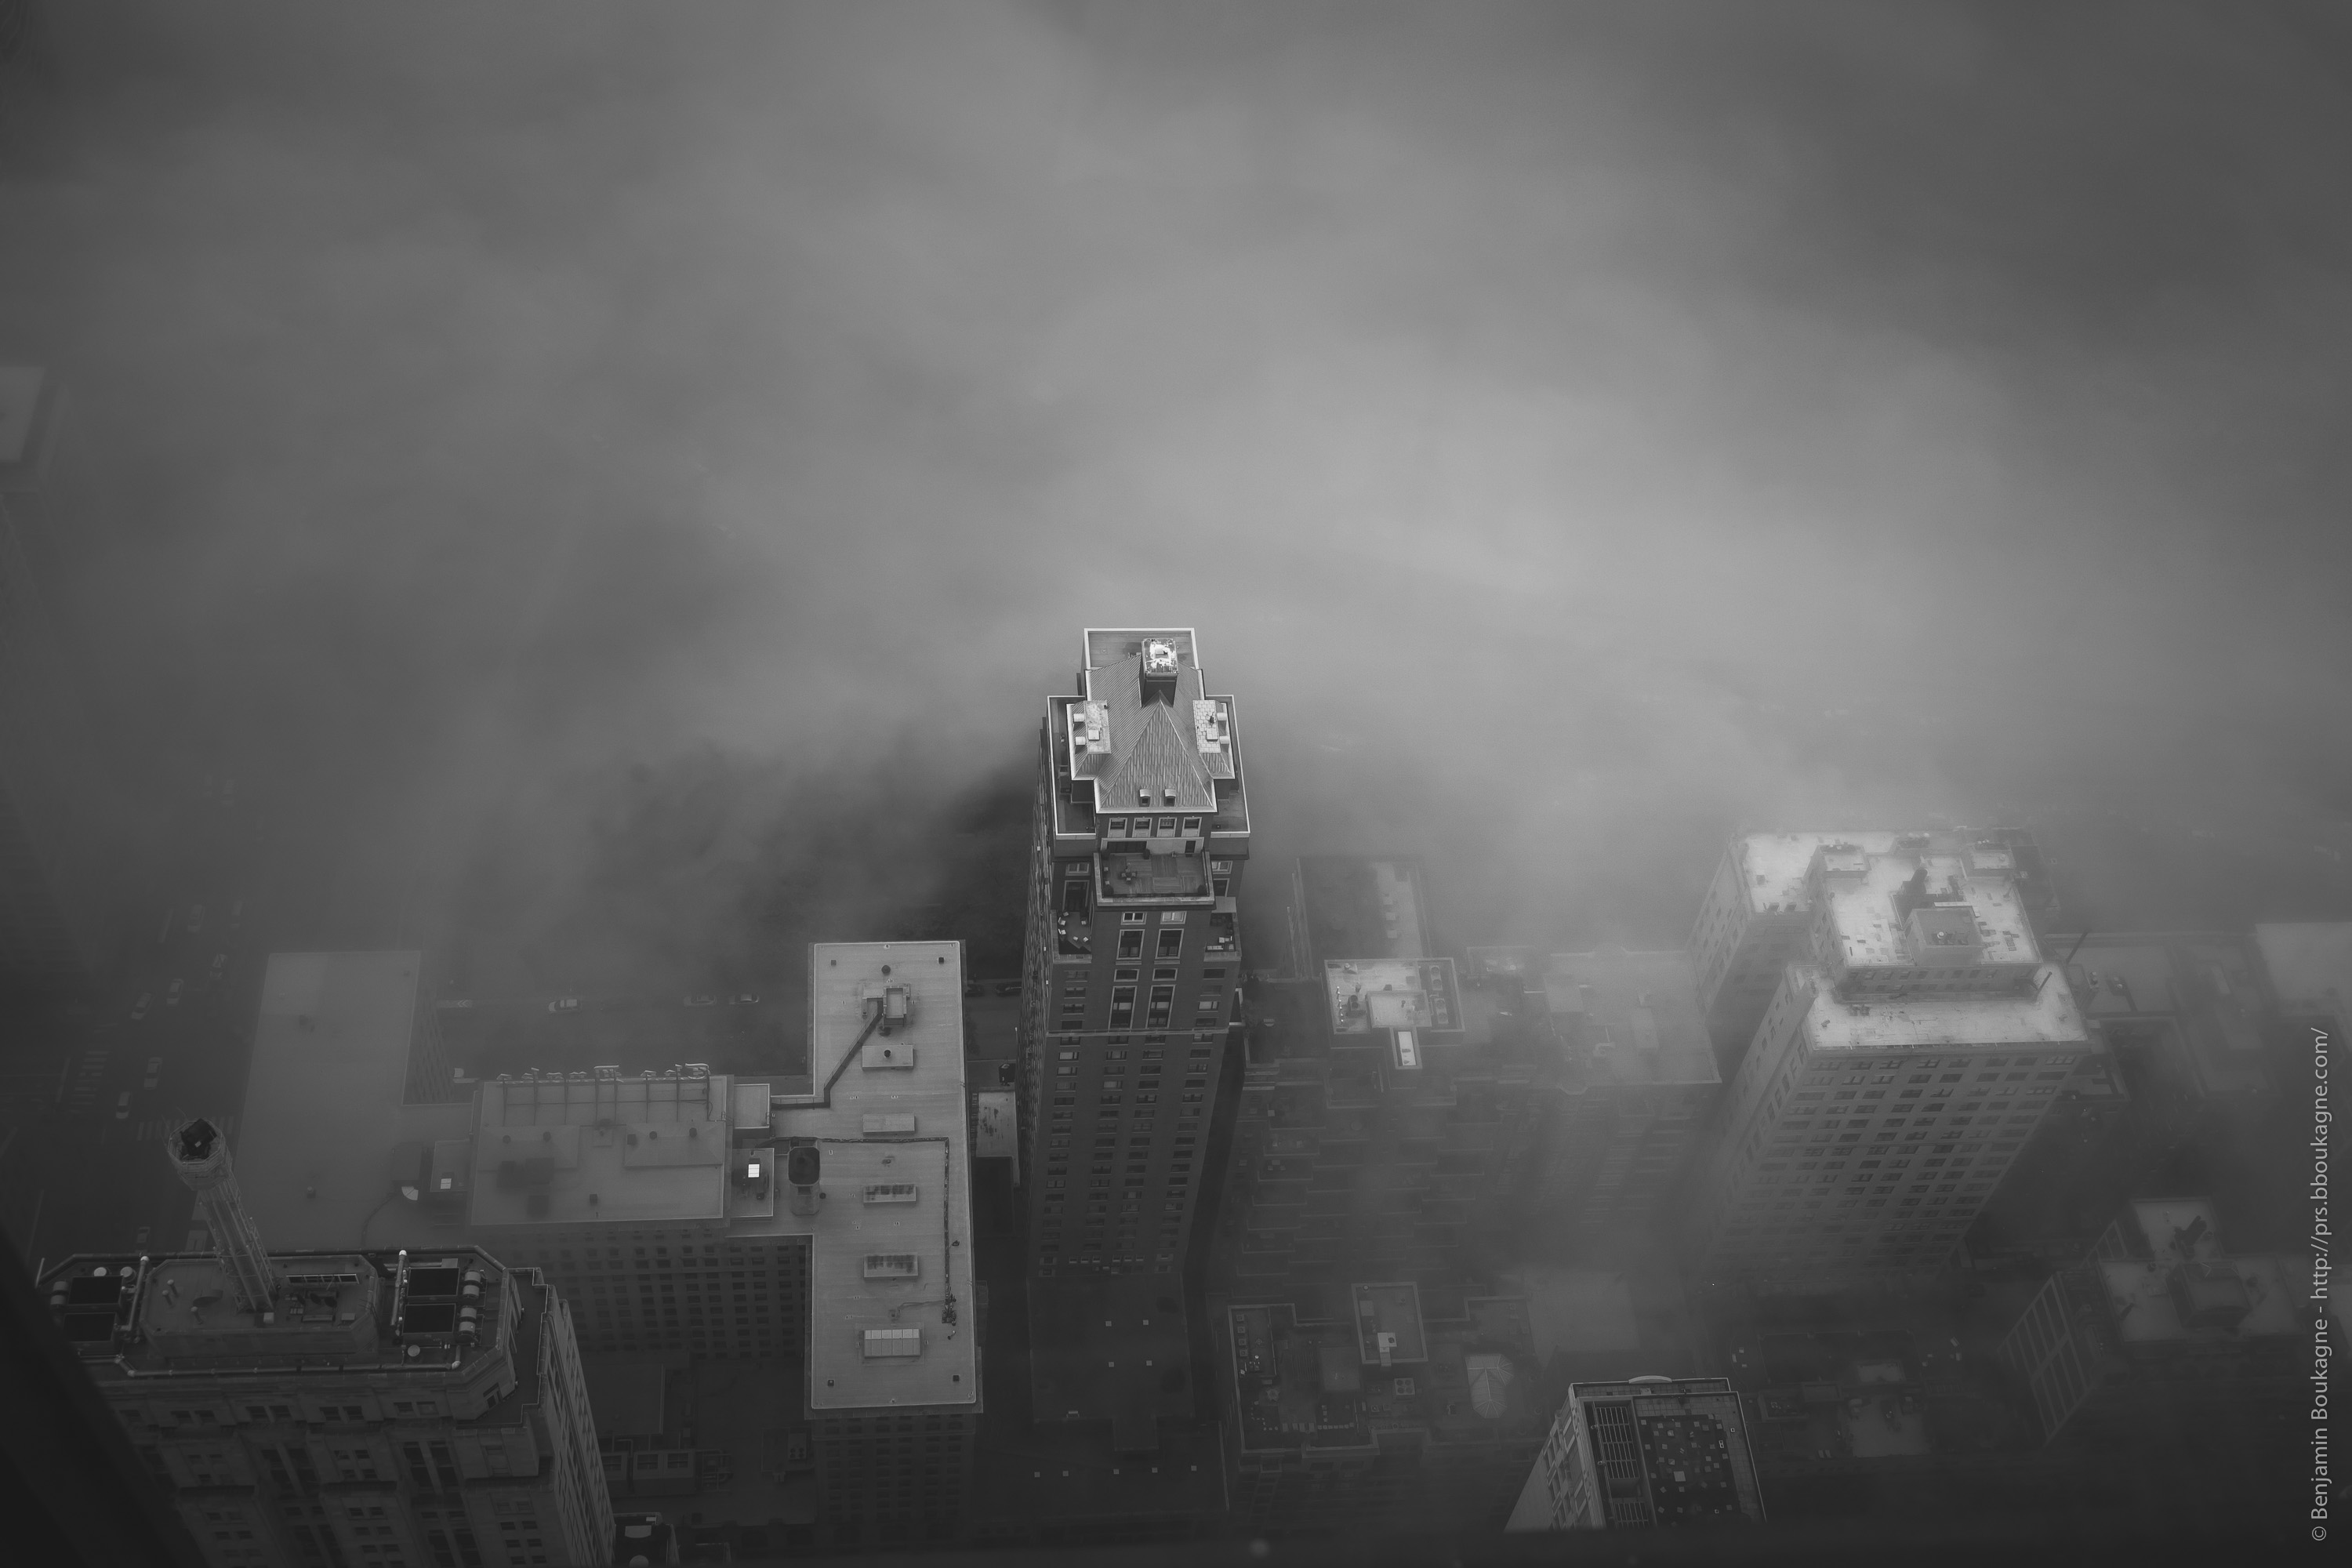 Chicago : A touch of fog